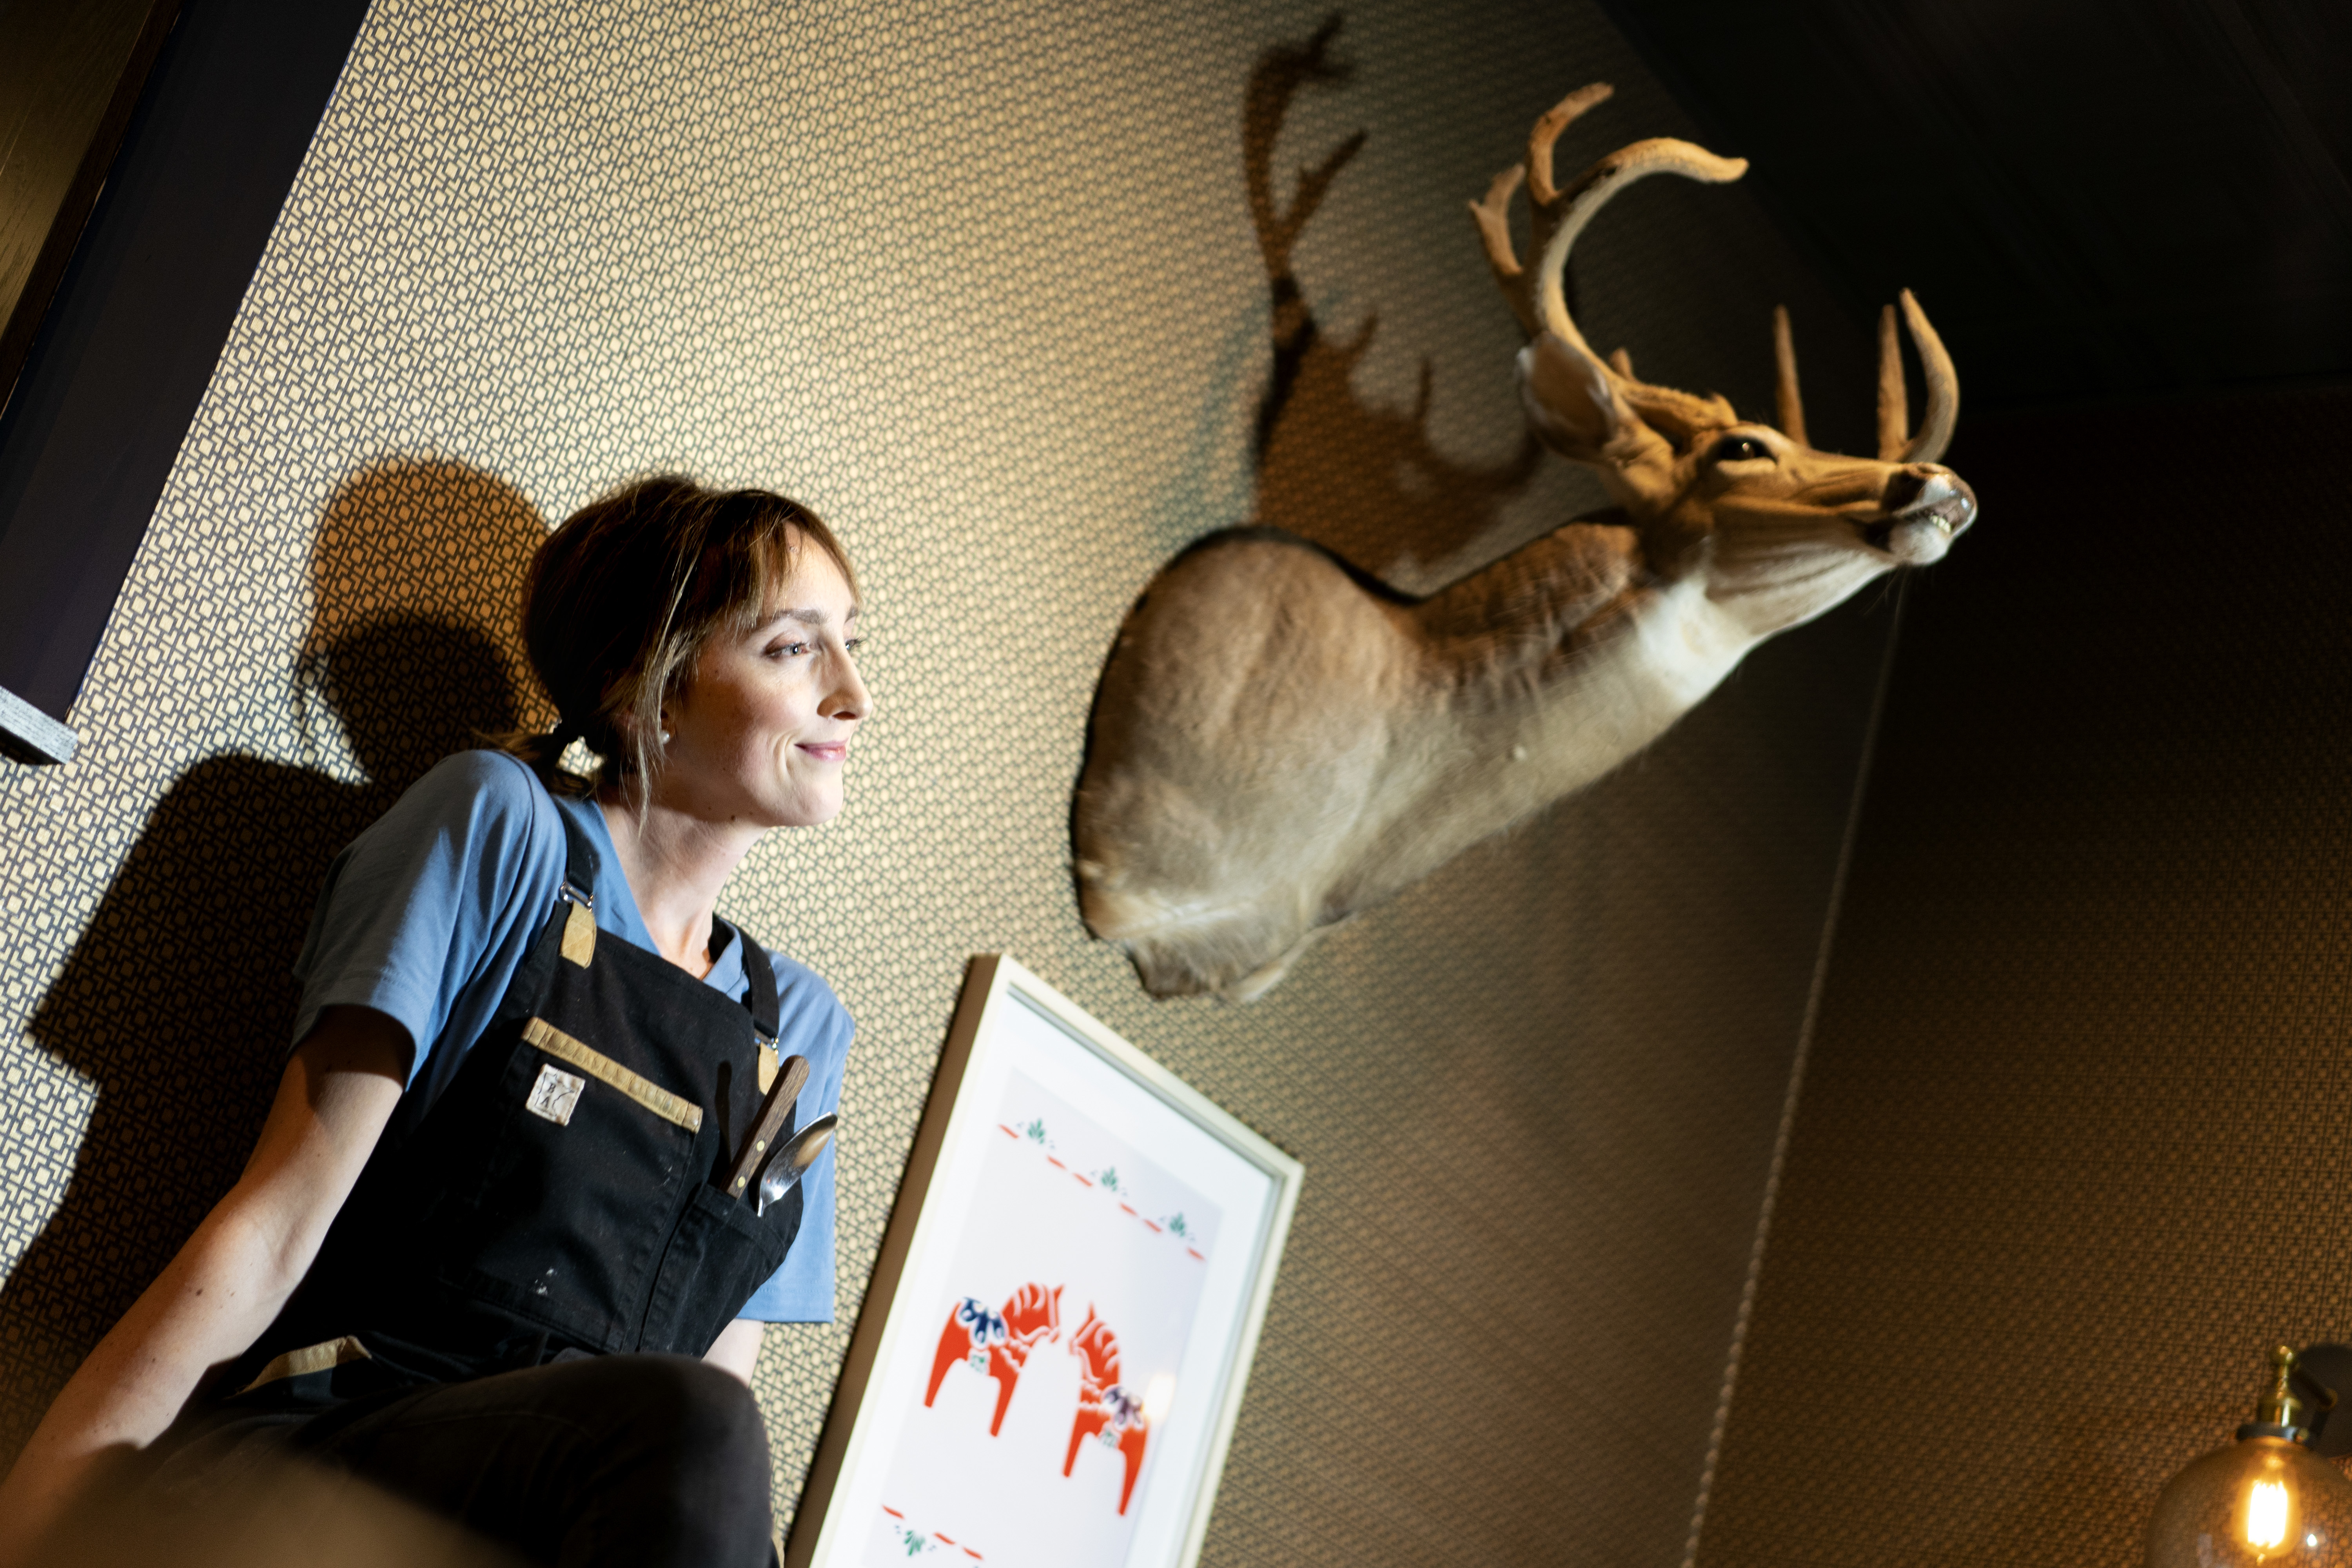 Karyn Tomlinson sits under a mounted deer head, looking into the distance